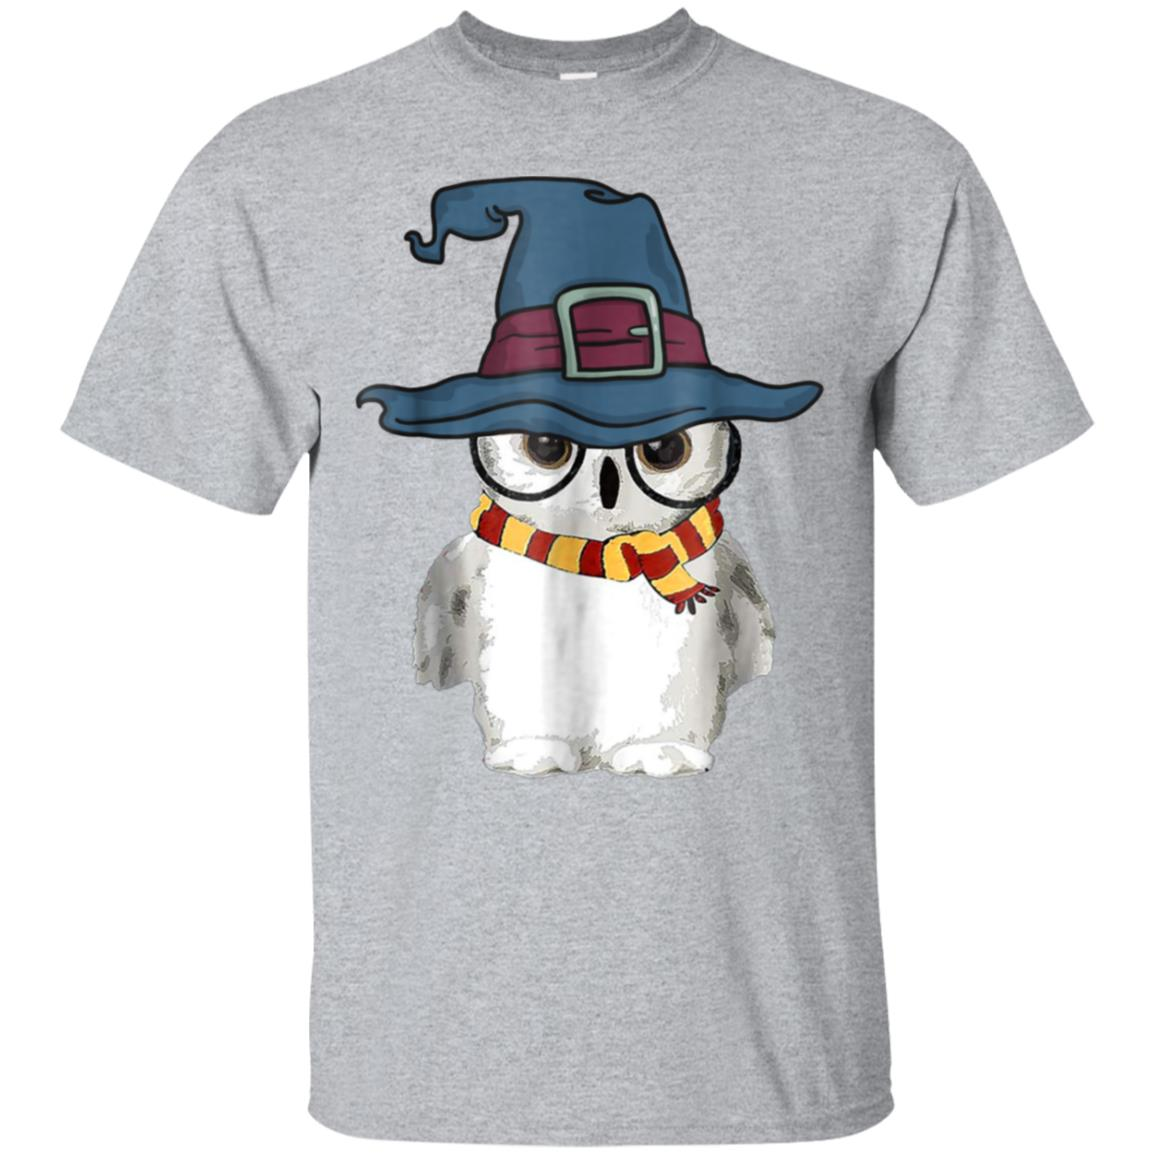 Funny Cute Owl Harry Magical Wizard Hat Potter T-shirt 99promocode